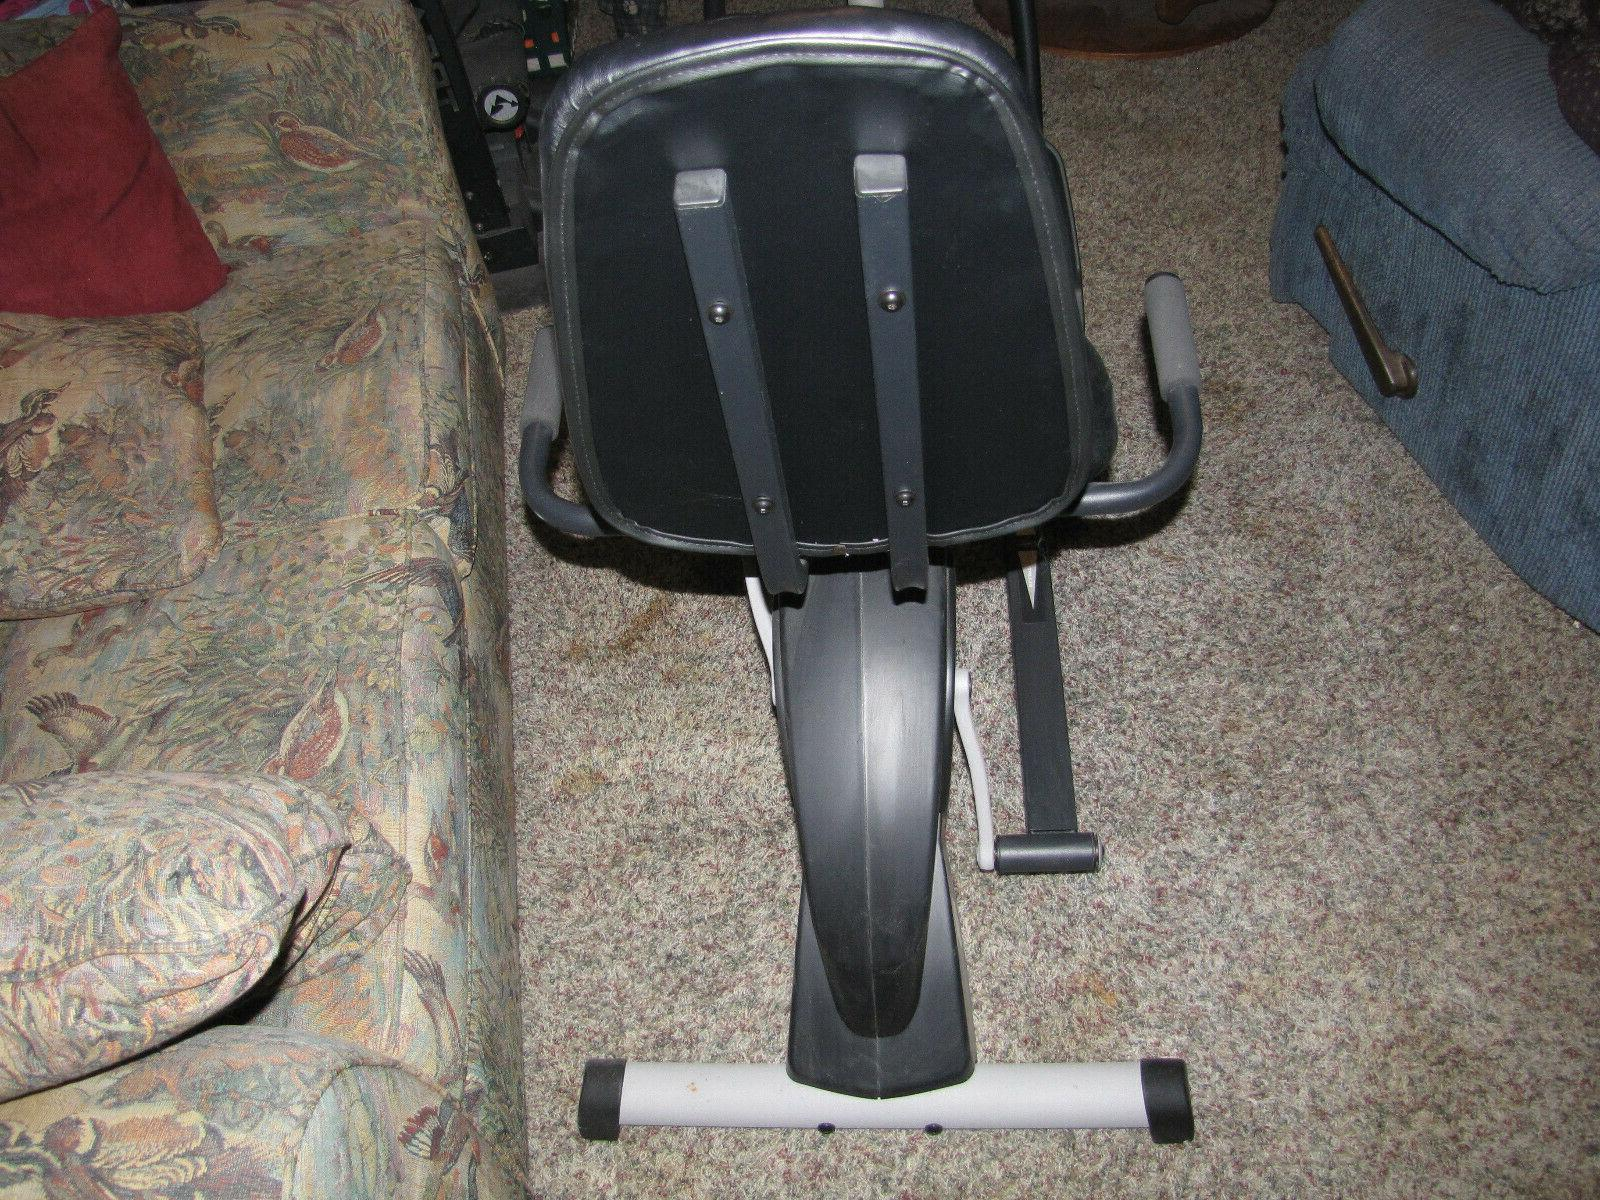 Pro-Form Model PFEL03812.3 - Recumbent Bike / Elliptical